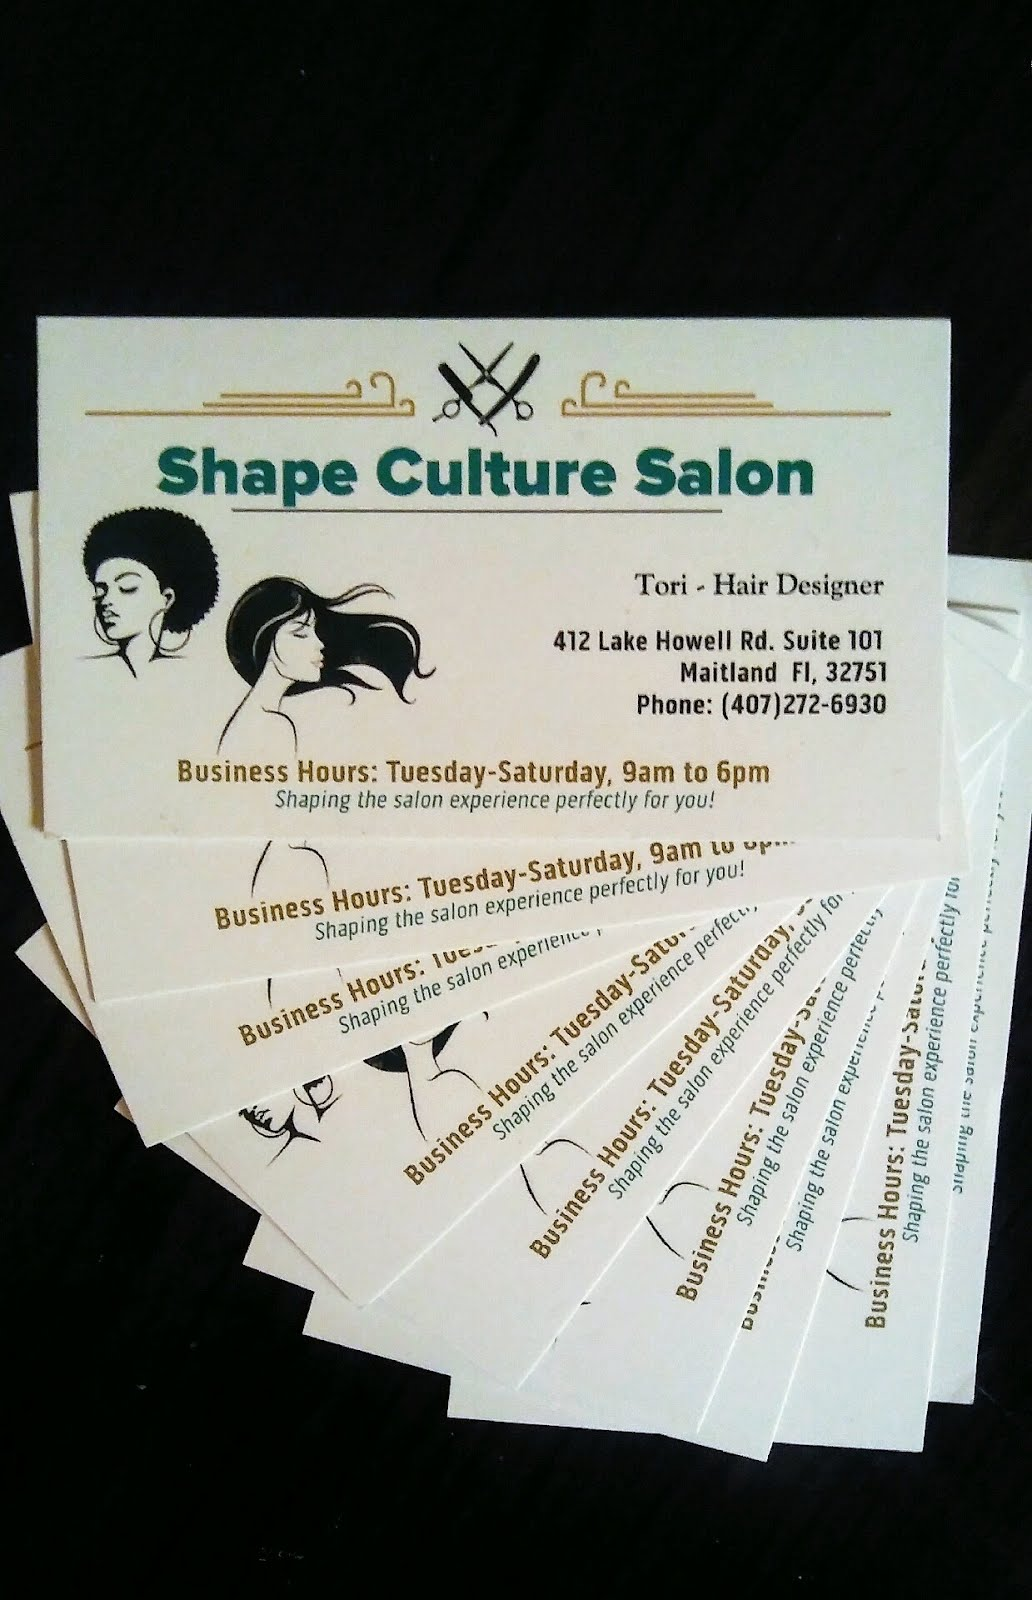 SHAPE CULTURE SALON 407-272-6930